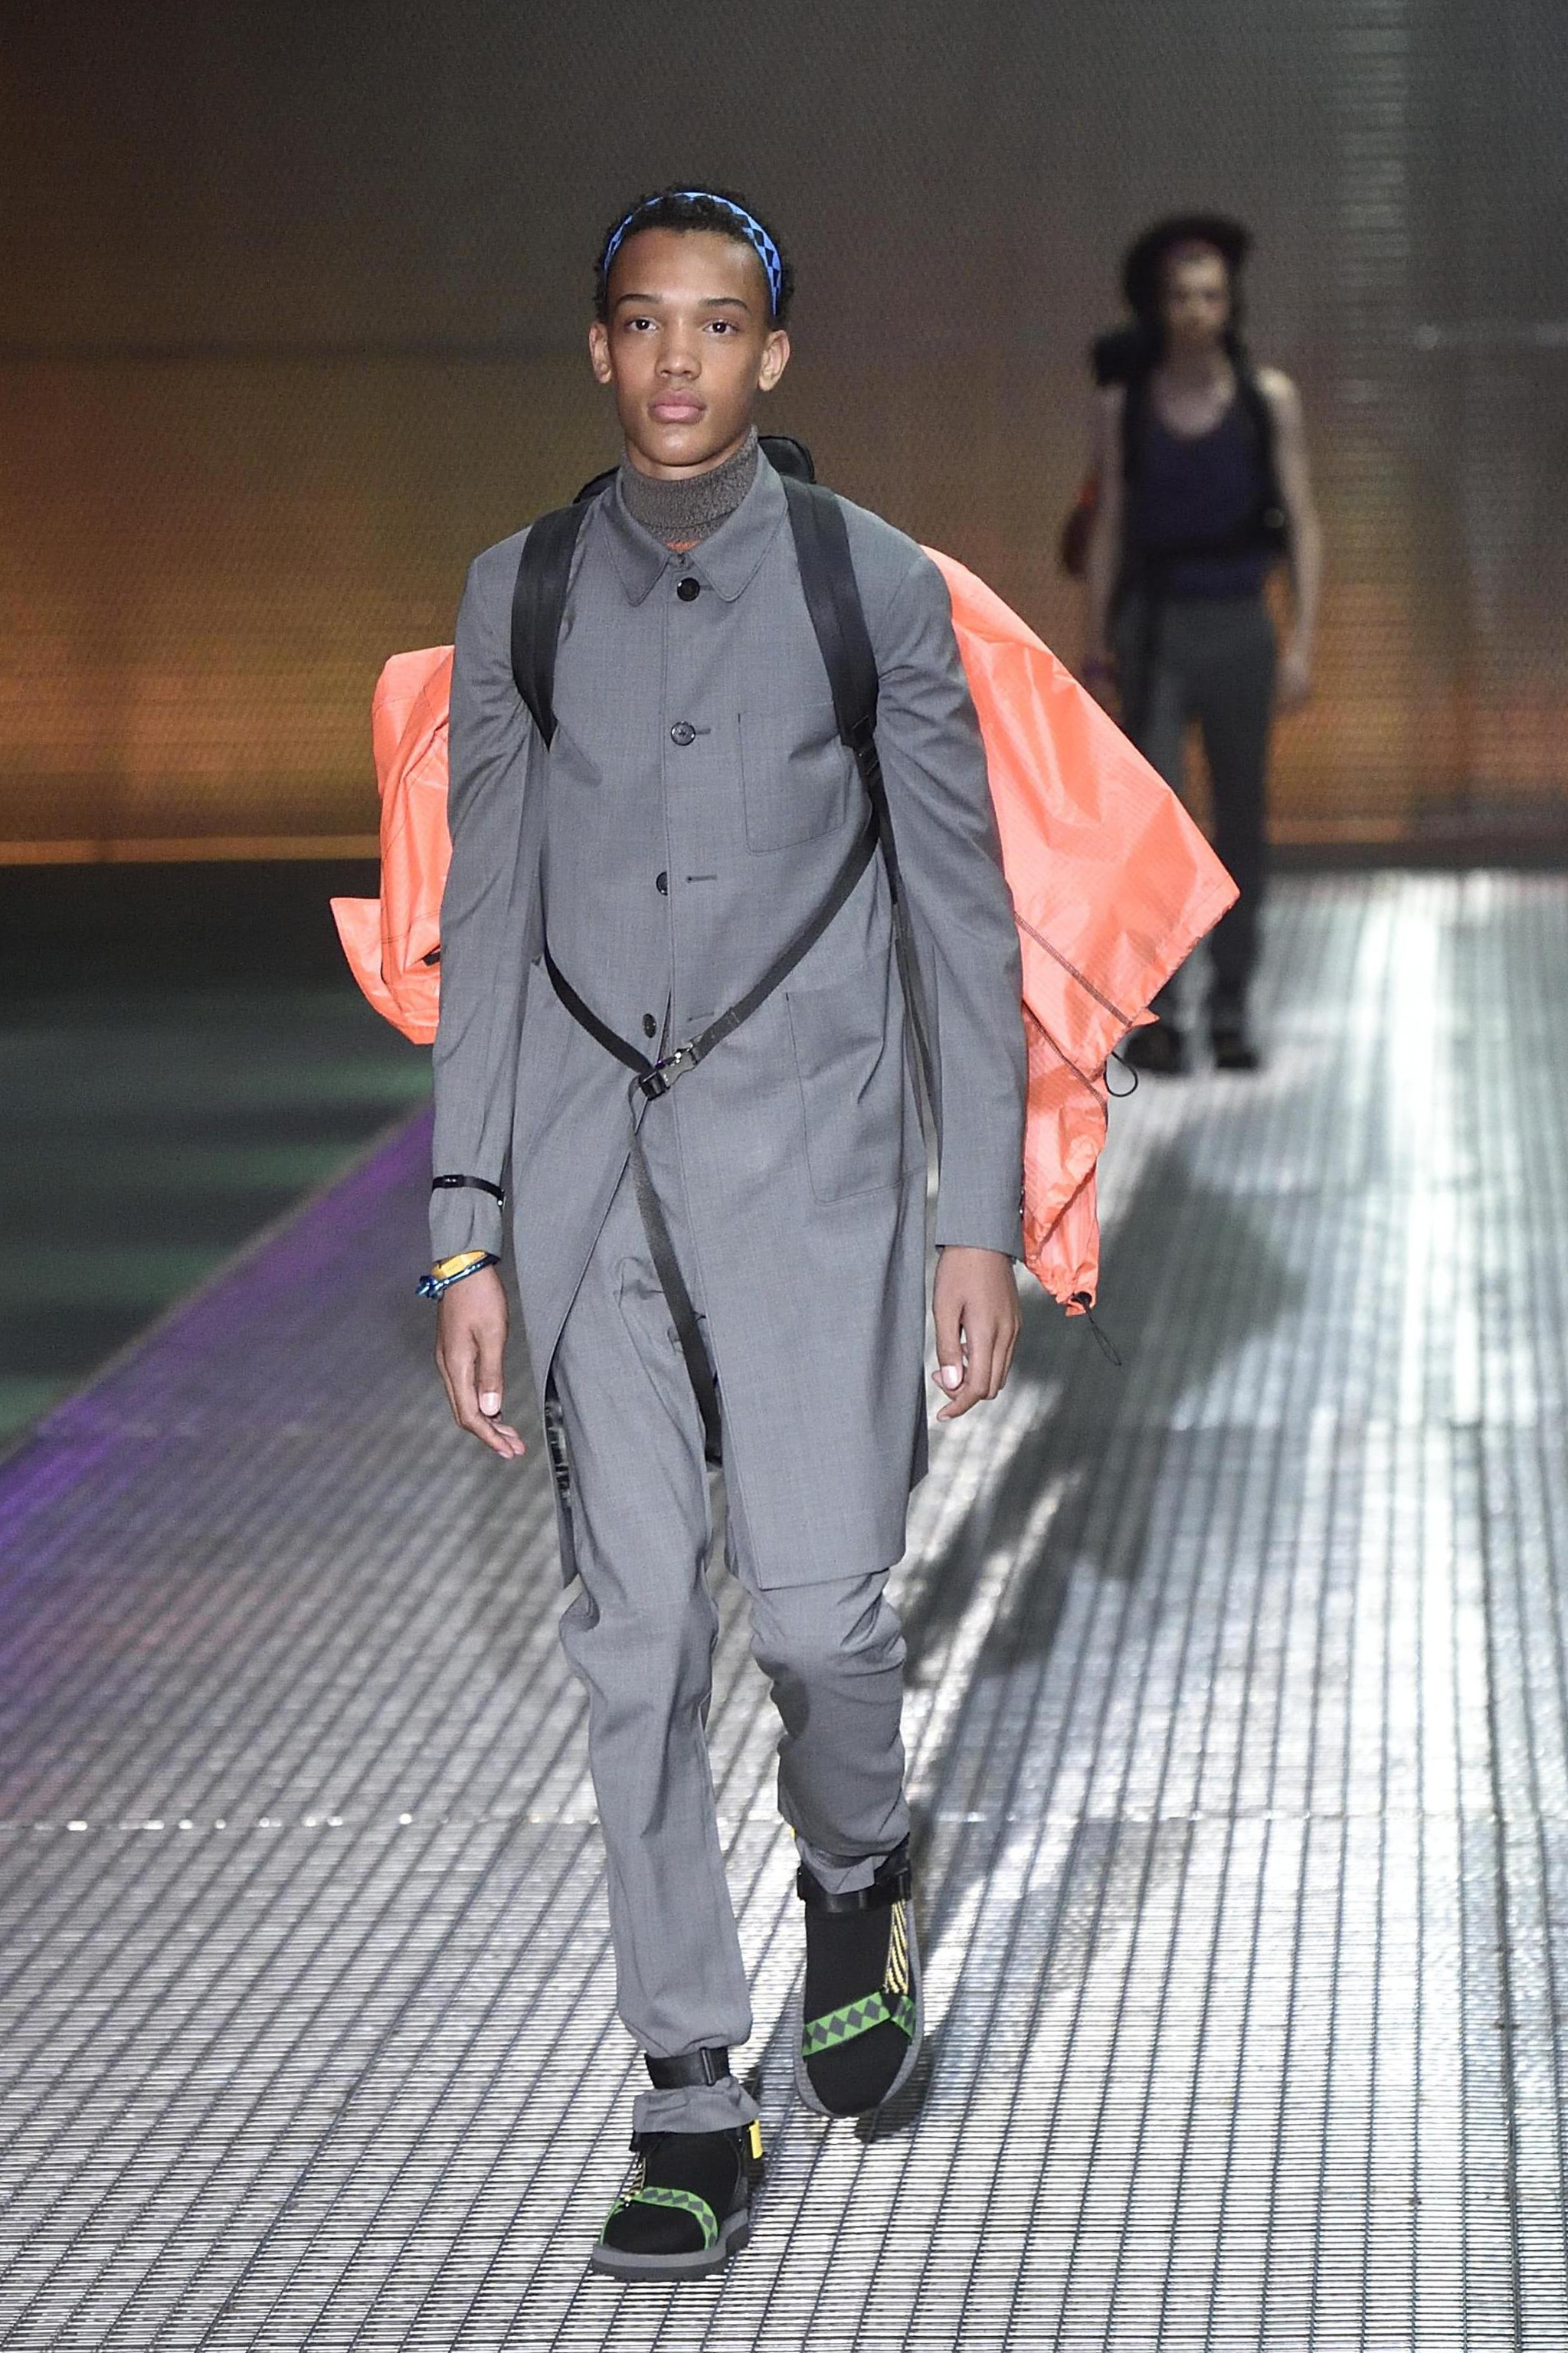 A model presents a creation from the Spring/Summer 2017 Menswear Collection of Italian fashion house Prada during the Milan Men's Fashion Week, in Milan, Italy, 19 June 2016. The Milano Moda Uomo runs from 17 to 21 June. EPA/FLAVIO LO SCALZO